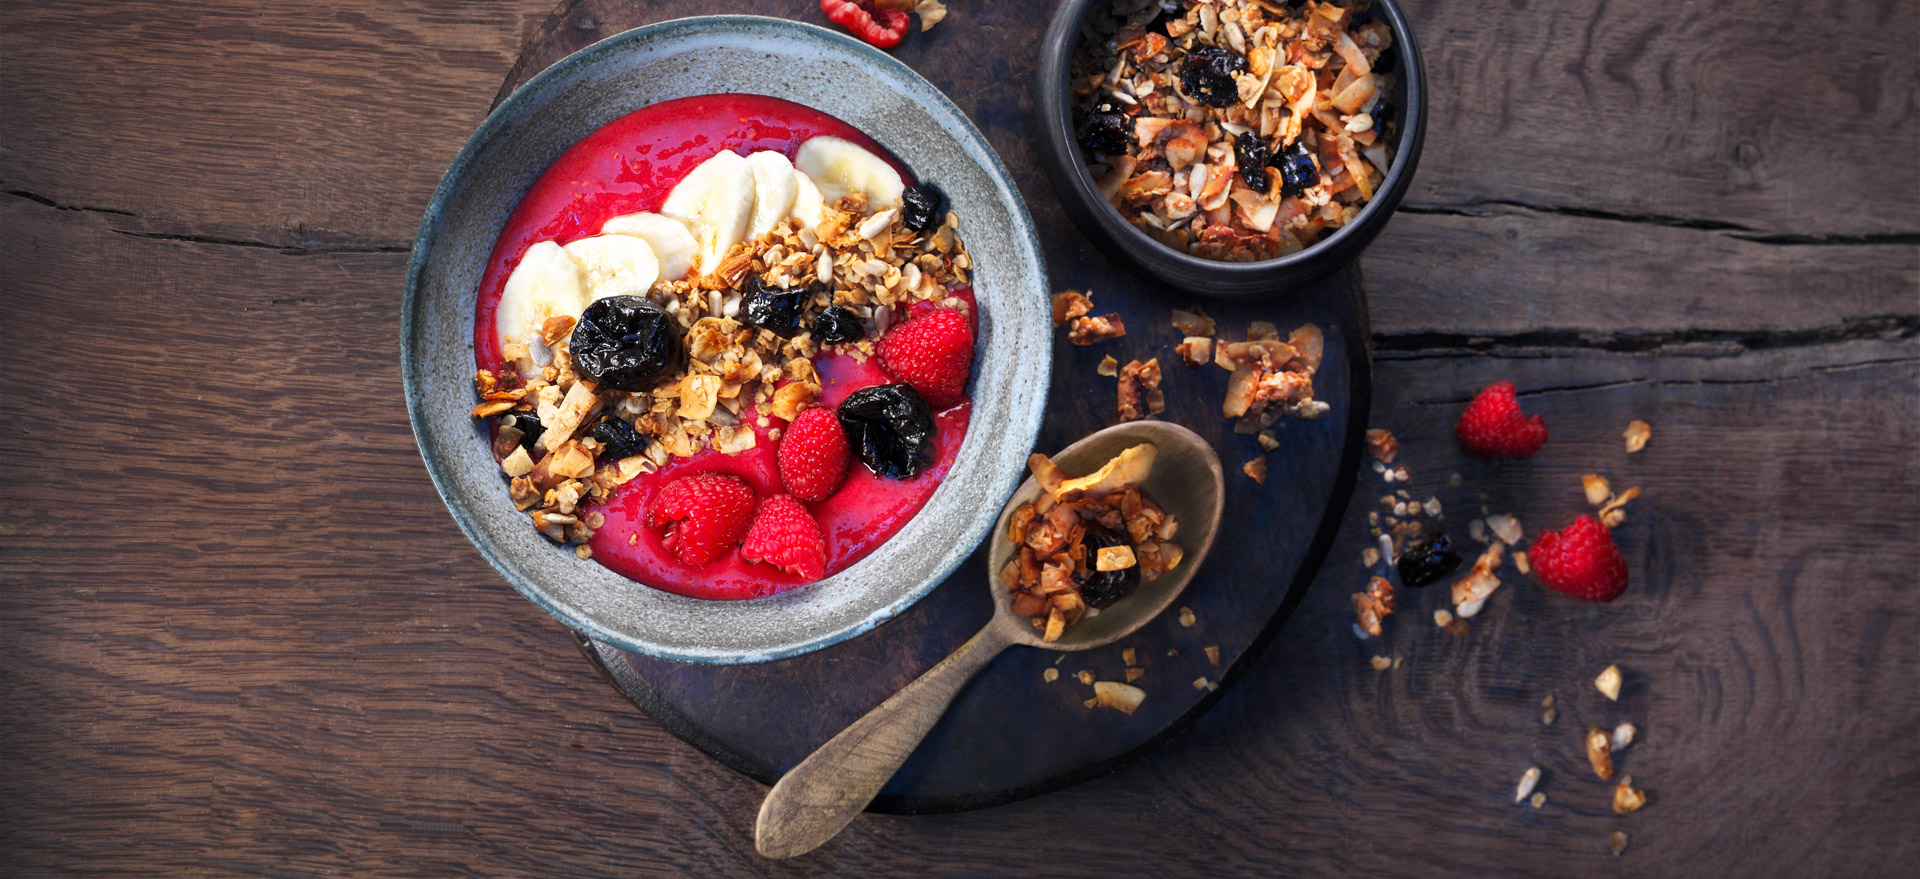 <p>This vibrant smoothie bowl combines a fruit-packed smoothie with crunchy granola, making it the perfect go-to breakfast or snack item. 446 kcal (1866 kJ); protein 8.8 g; fat 13.3 g; carbohydrates 68.8 g For a dairy-free, reduced-sugar granola, see Large Chunk Granola.</p>